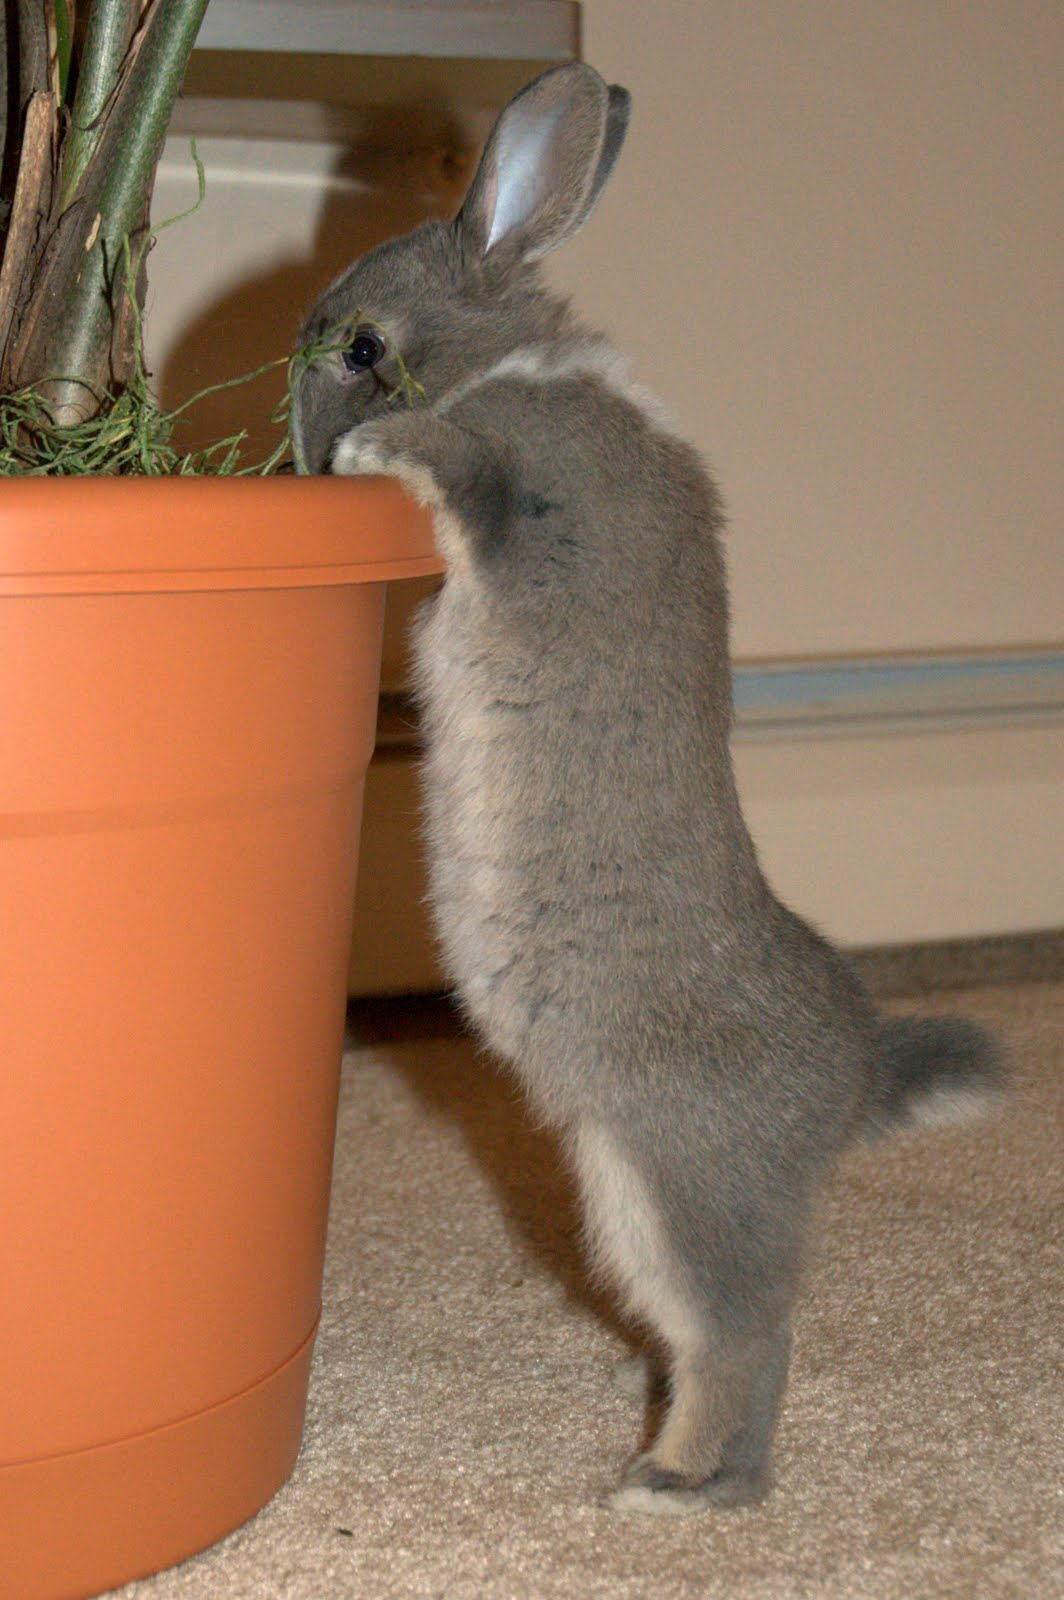 Bunny Stretches Up to See What's Available in the Planter for Nomming